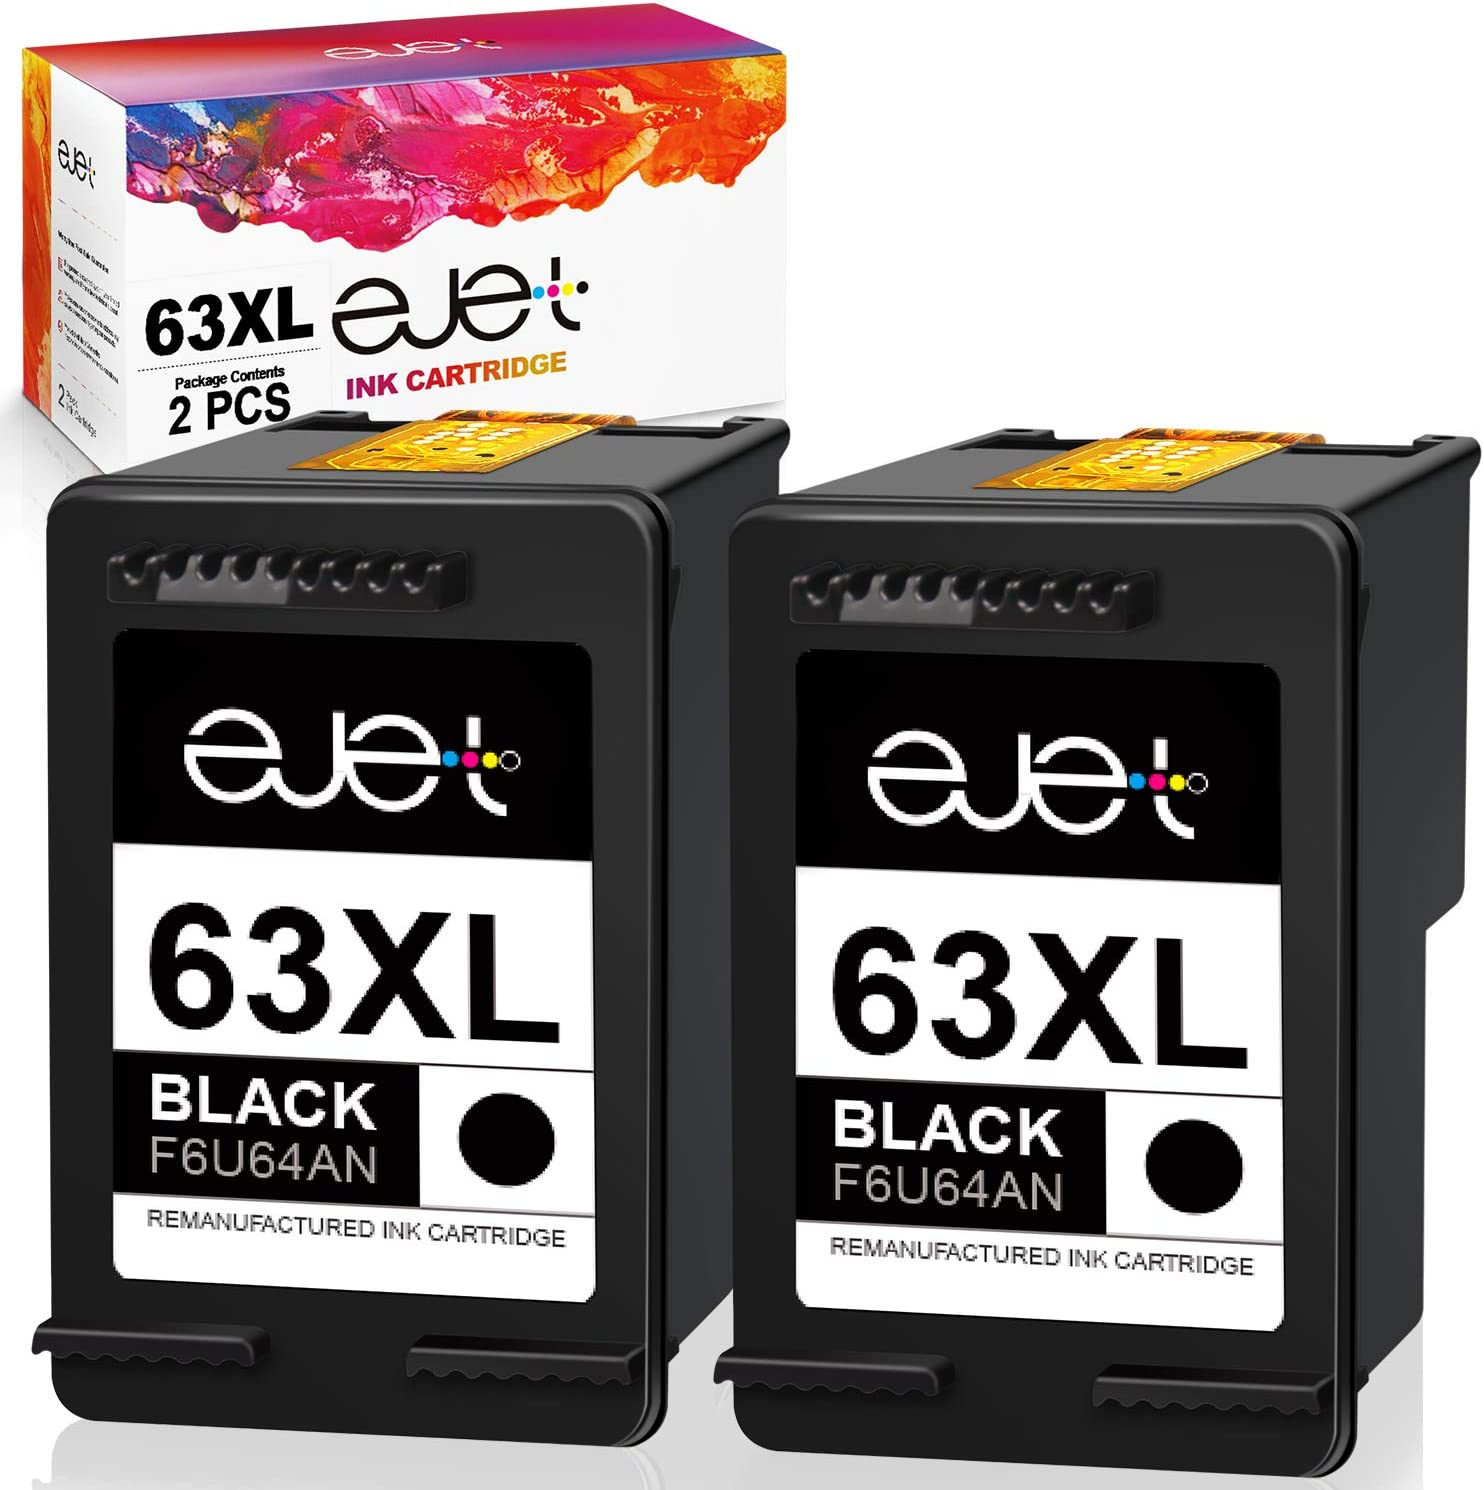 ejet Remanufactured Ink Cartridge Replacement for HP 63XL 63 XL, High Yield Work with OfficeJet 3830 4650 5255 Envy 4520 4512 4516 Deskjet 1112 3630 3634 3639 3632 2132 Printer (2 Black)